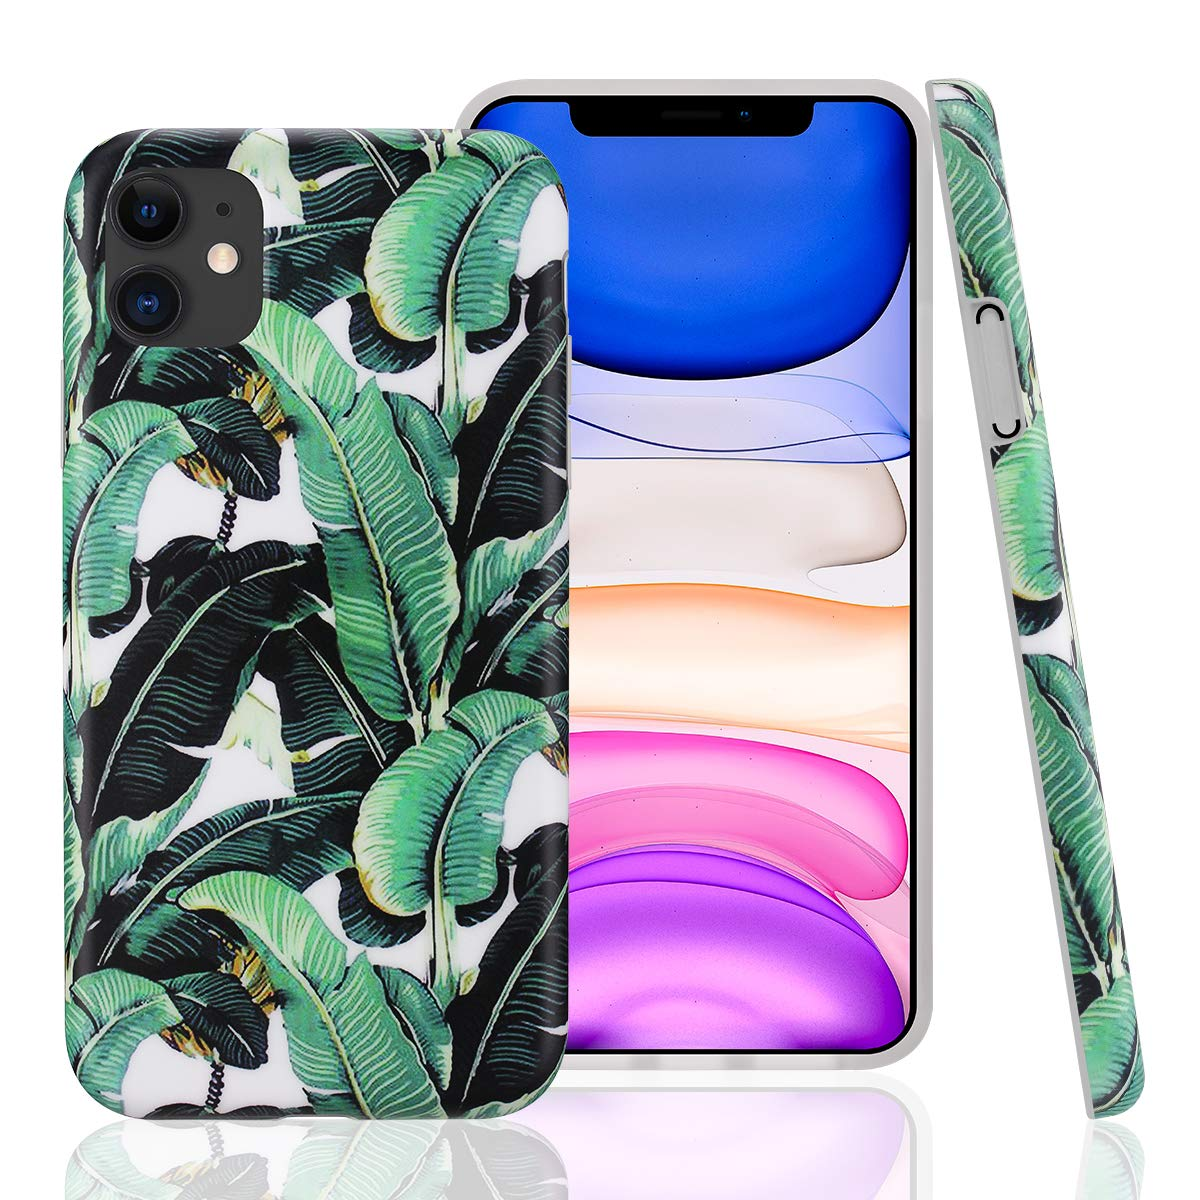 GOLINK Case for iPhone 11,Floral Series Slim-Fit Ultra-Thin Anti-Scratch Shock Proof Dust Proof Anti-Finger Print TPU Gel Case for iPhone XI 6.1 inch(2019 Release)-Leaves